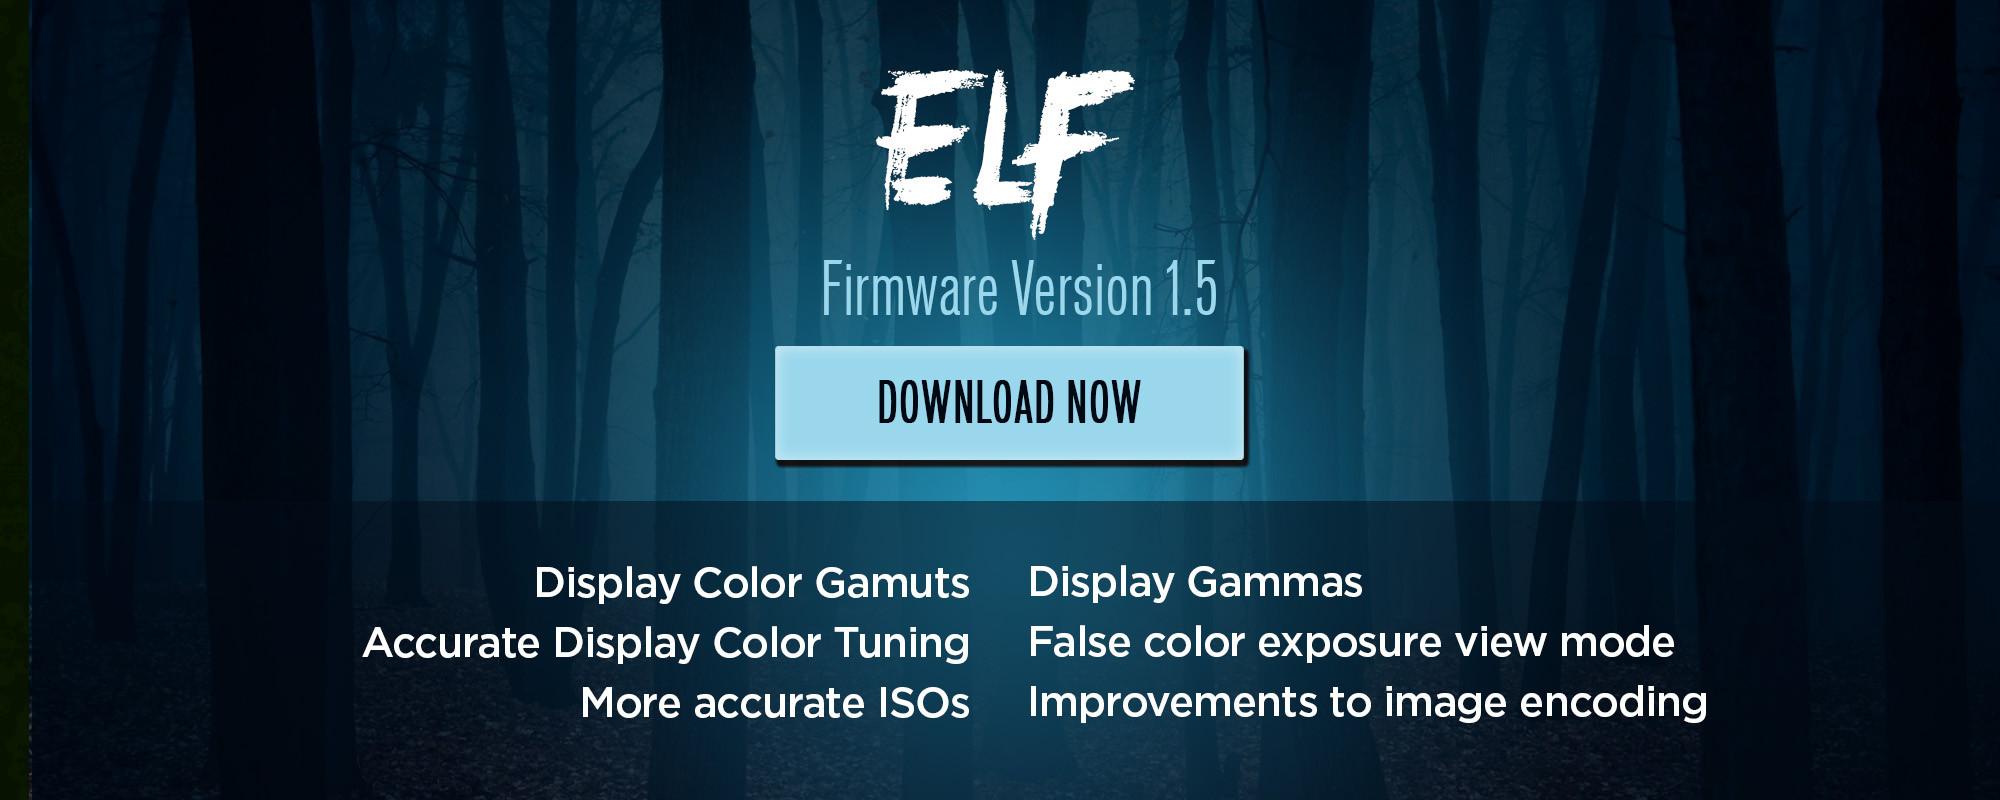 Download firmware 1.5 today!